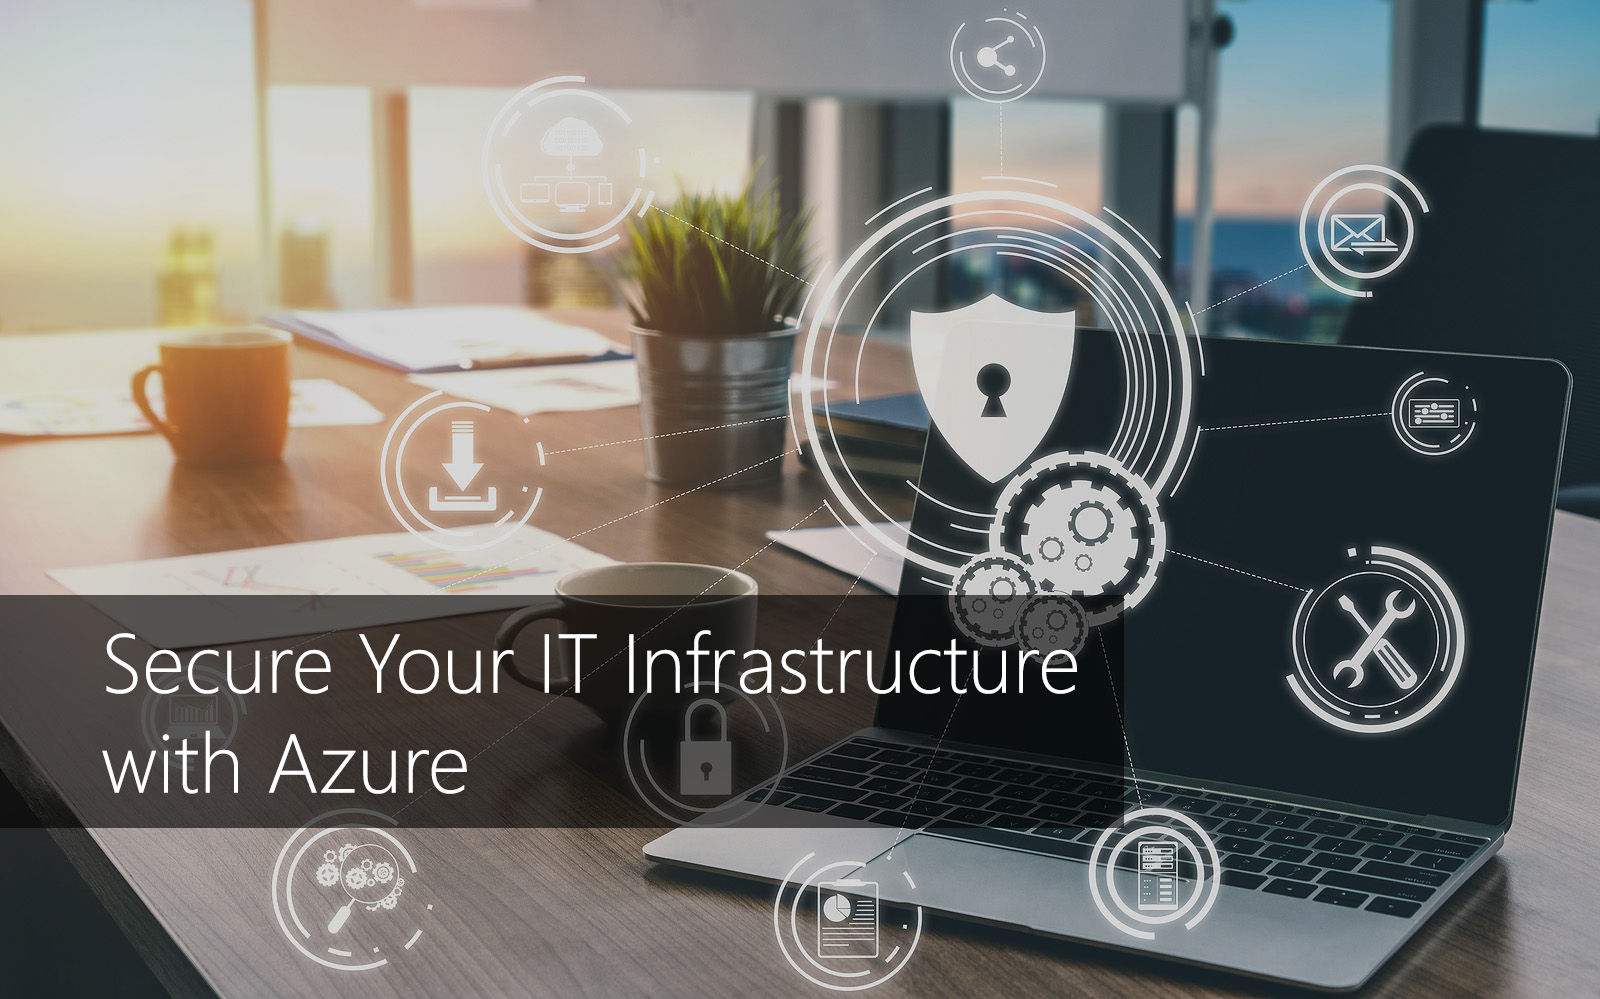 tmc-blog-secure-your-it-infrastructure-with-azure